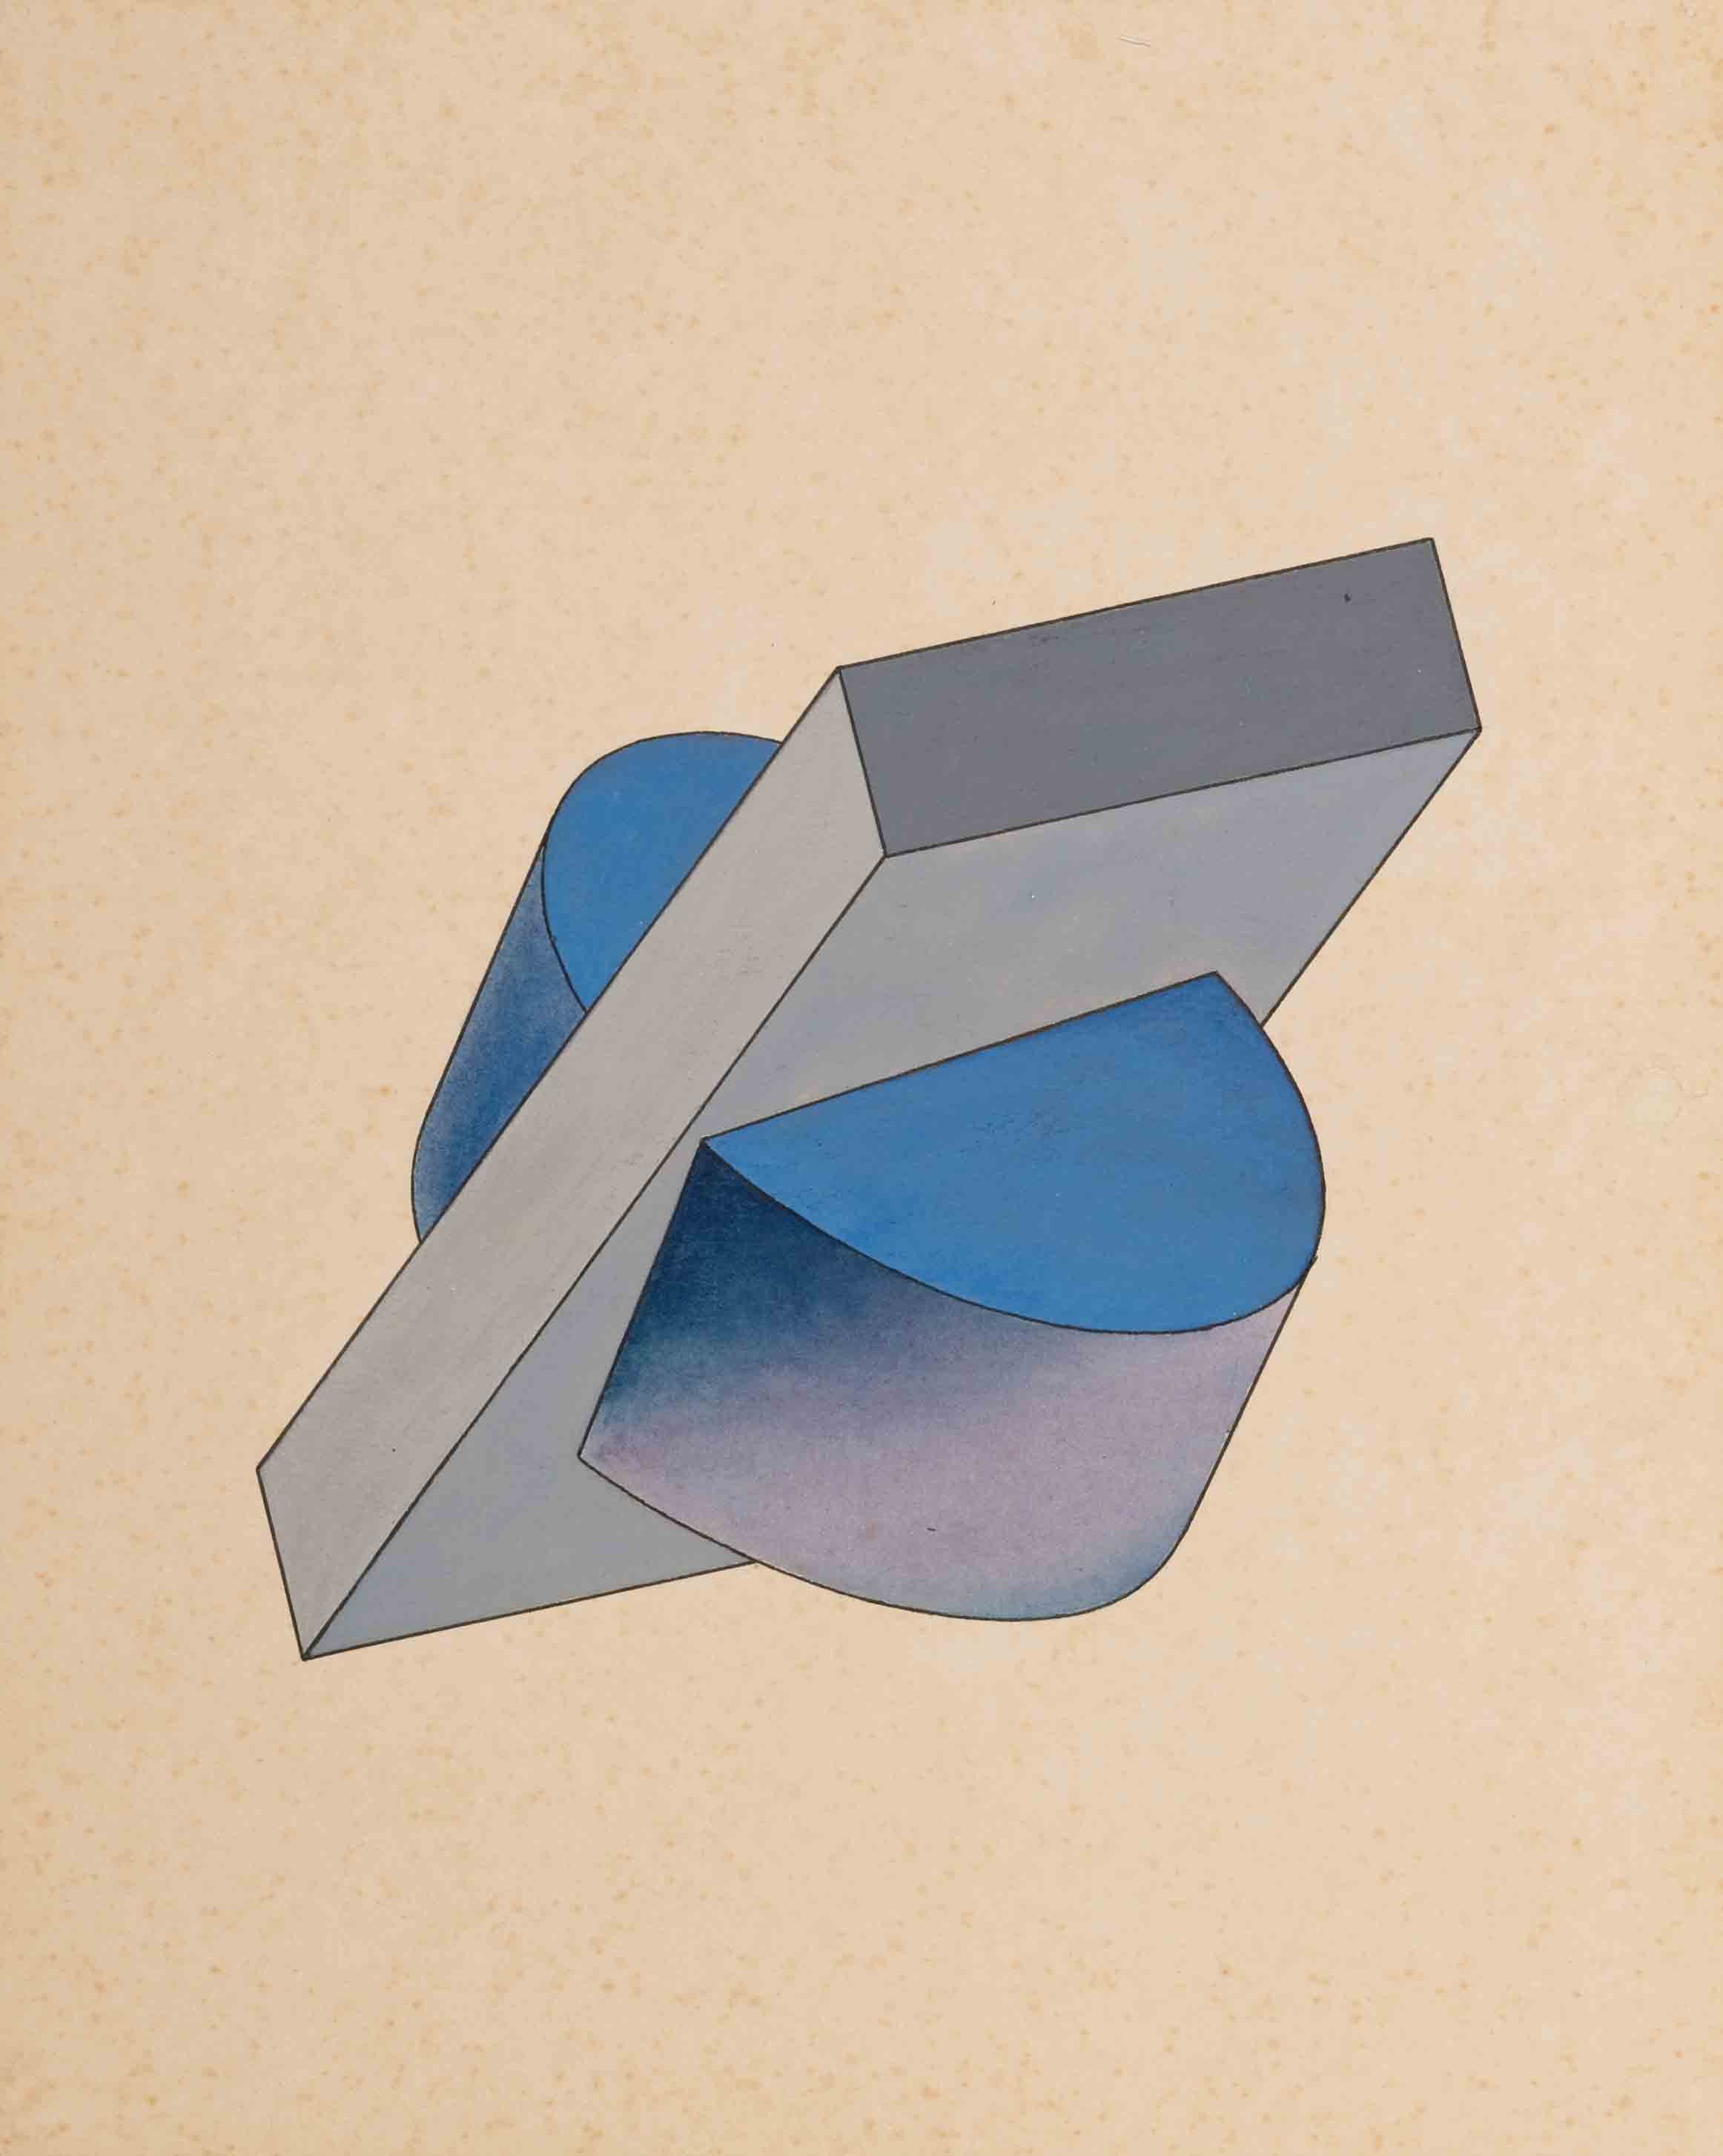 Untitled from the series The Course of Dimensional Art, c.1920s - Yakov Chernikhov